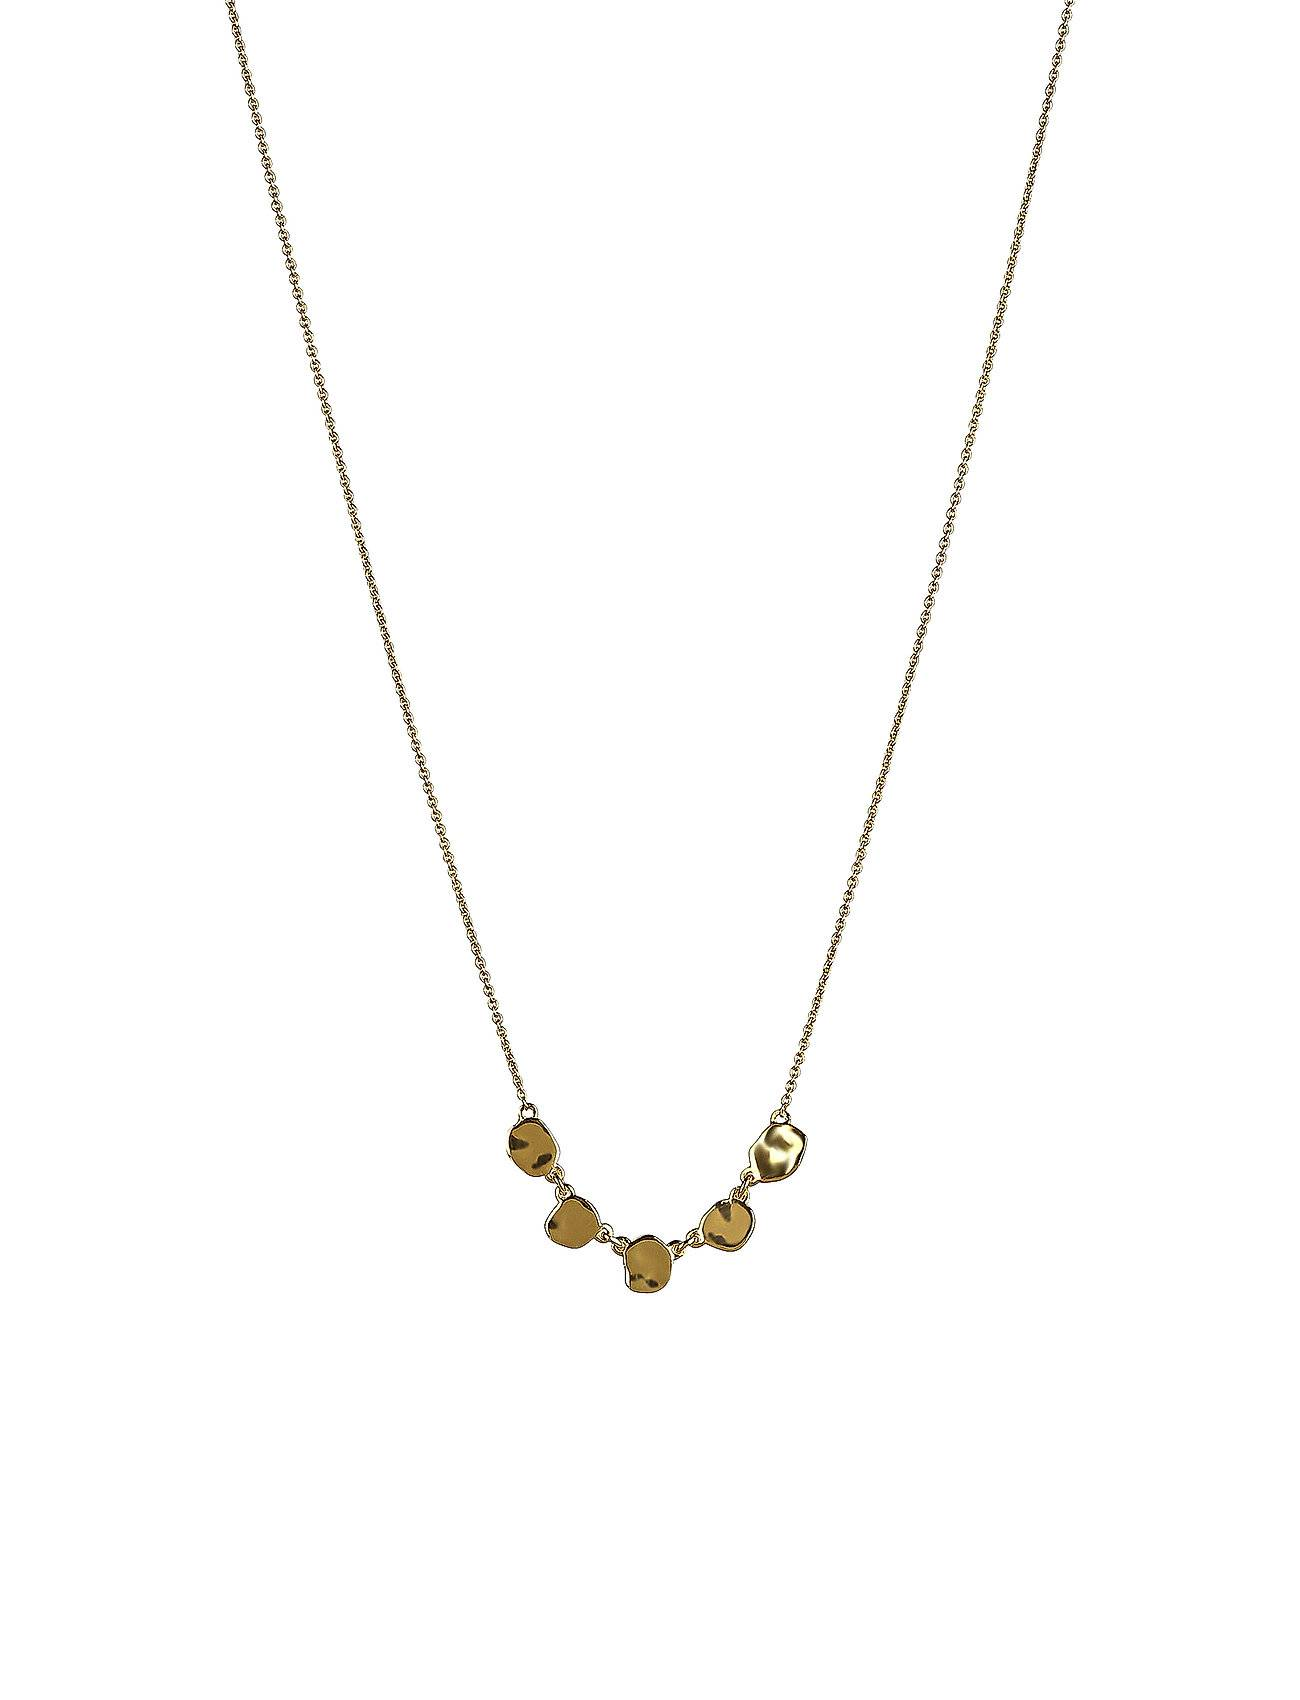 Syster P Divine Disc Necklace Gold Accessories Jewellery Necklaces Dainty Necklaces Kulta Syster P